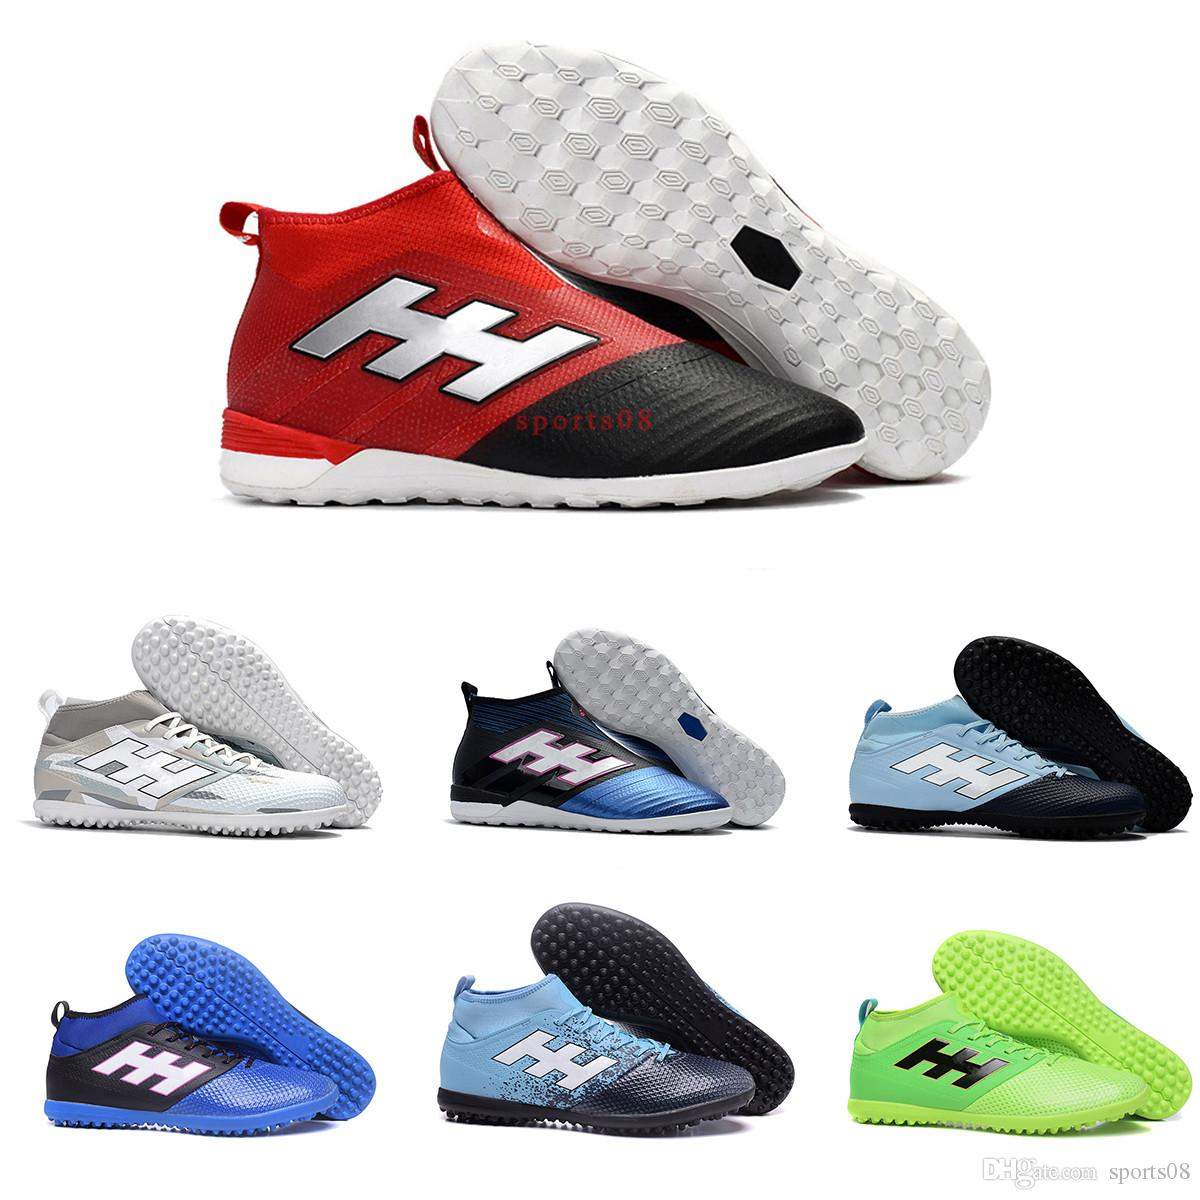 Original ACE Tango 17 Purecontrol FG Indoor Soccer Cleats Turf In Best  Quality Soccer Shoes 2017 ACE Football Boots Mens Women No Laces Boot UK  2019 From ... 102bf7926